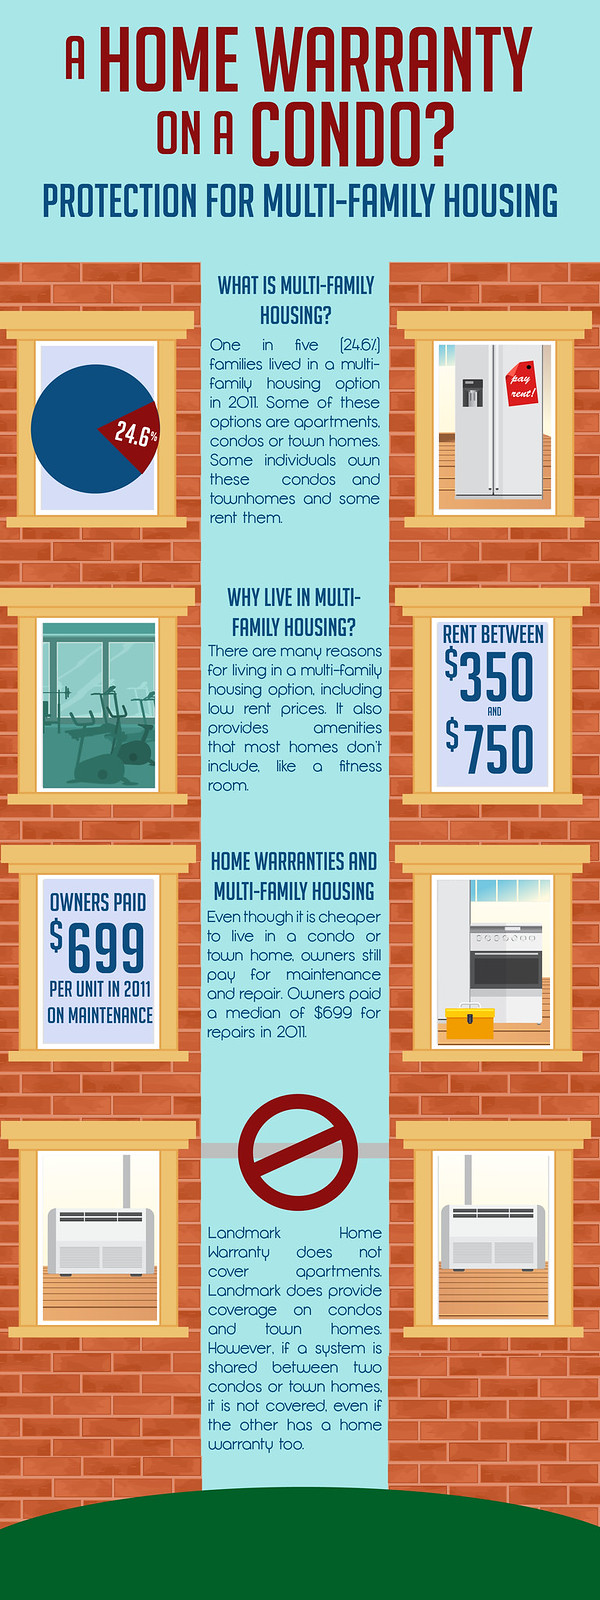 Best home warranty companies in az - A Home Warranty On A Condo Infographic